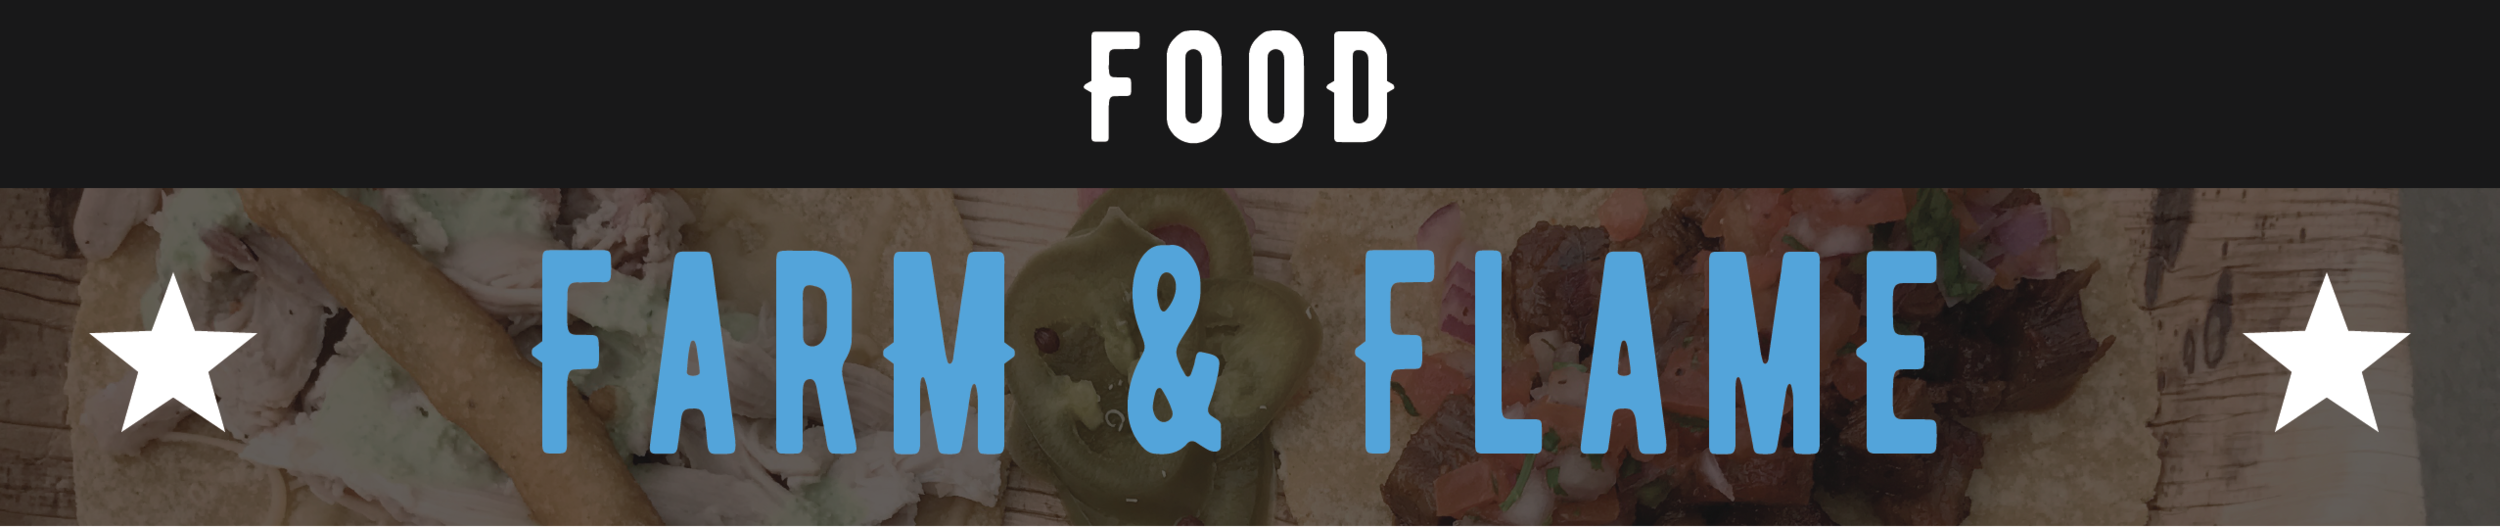 food banner-01.png